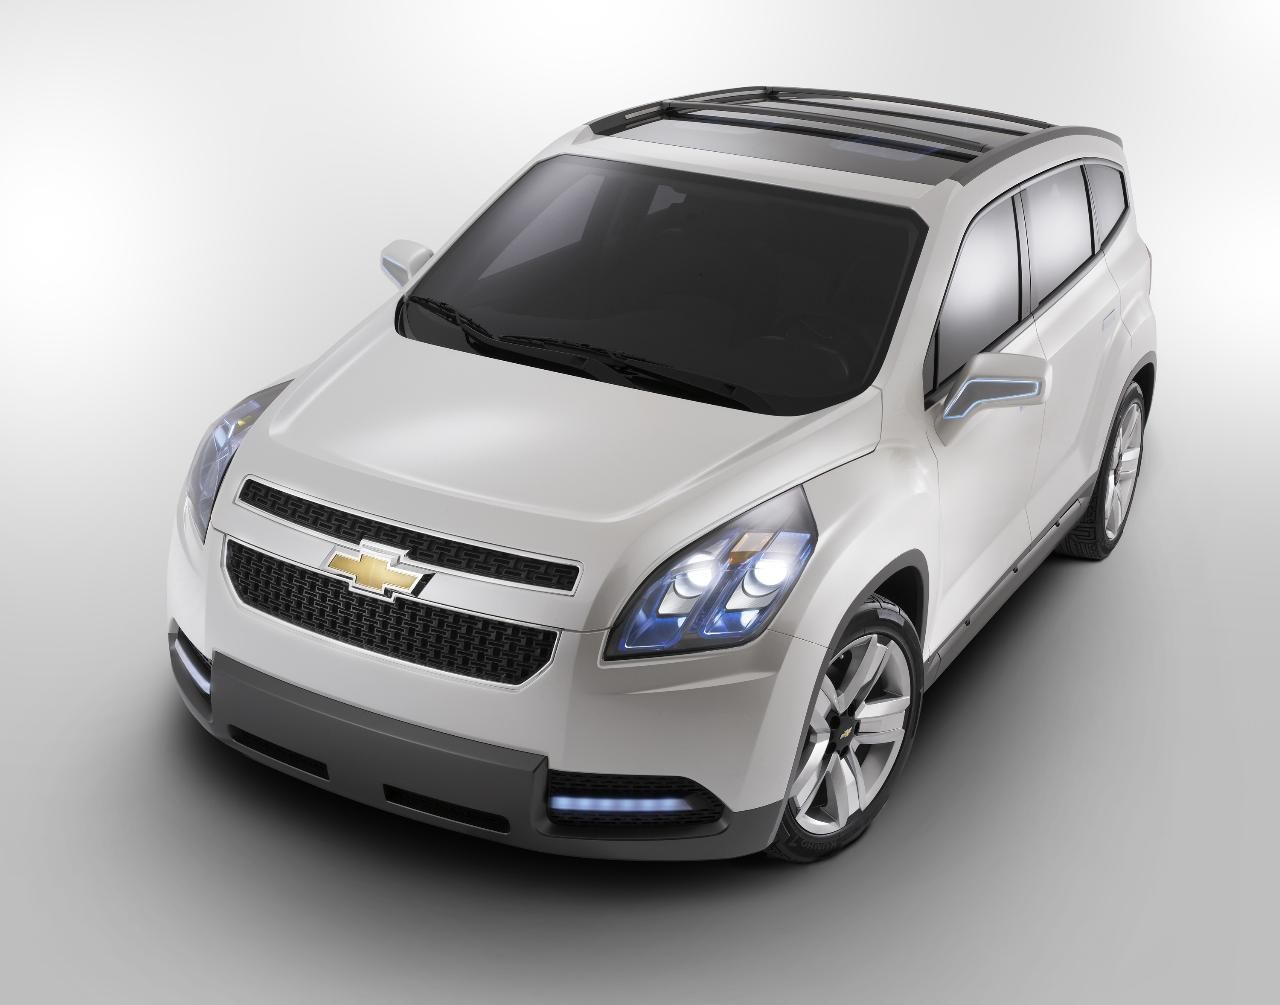 Concept Cars Chevrolet 2005 2008 All Evolution And Timelines